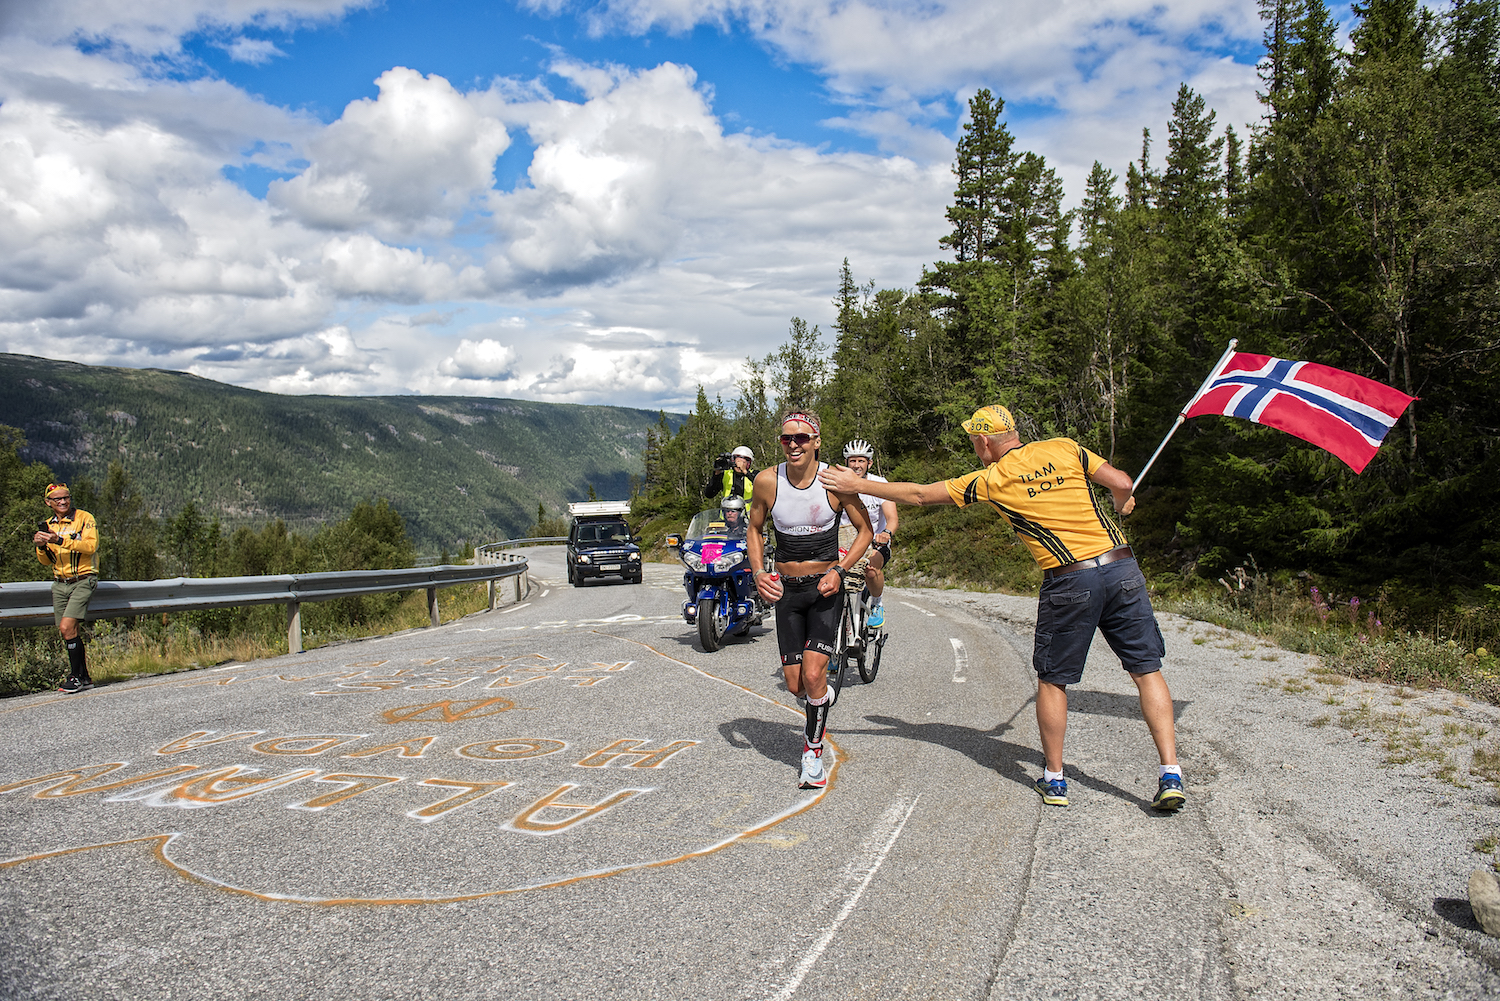 Photo credit: Allan Hovda running in first place at Norseman 2018 by Agurtxane Concellon